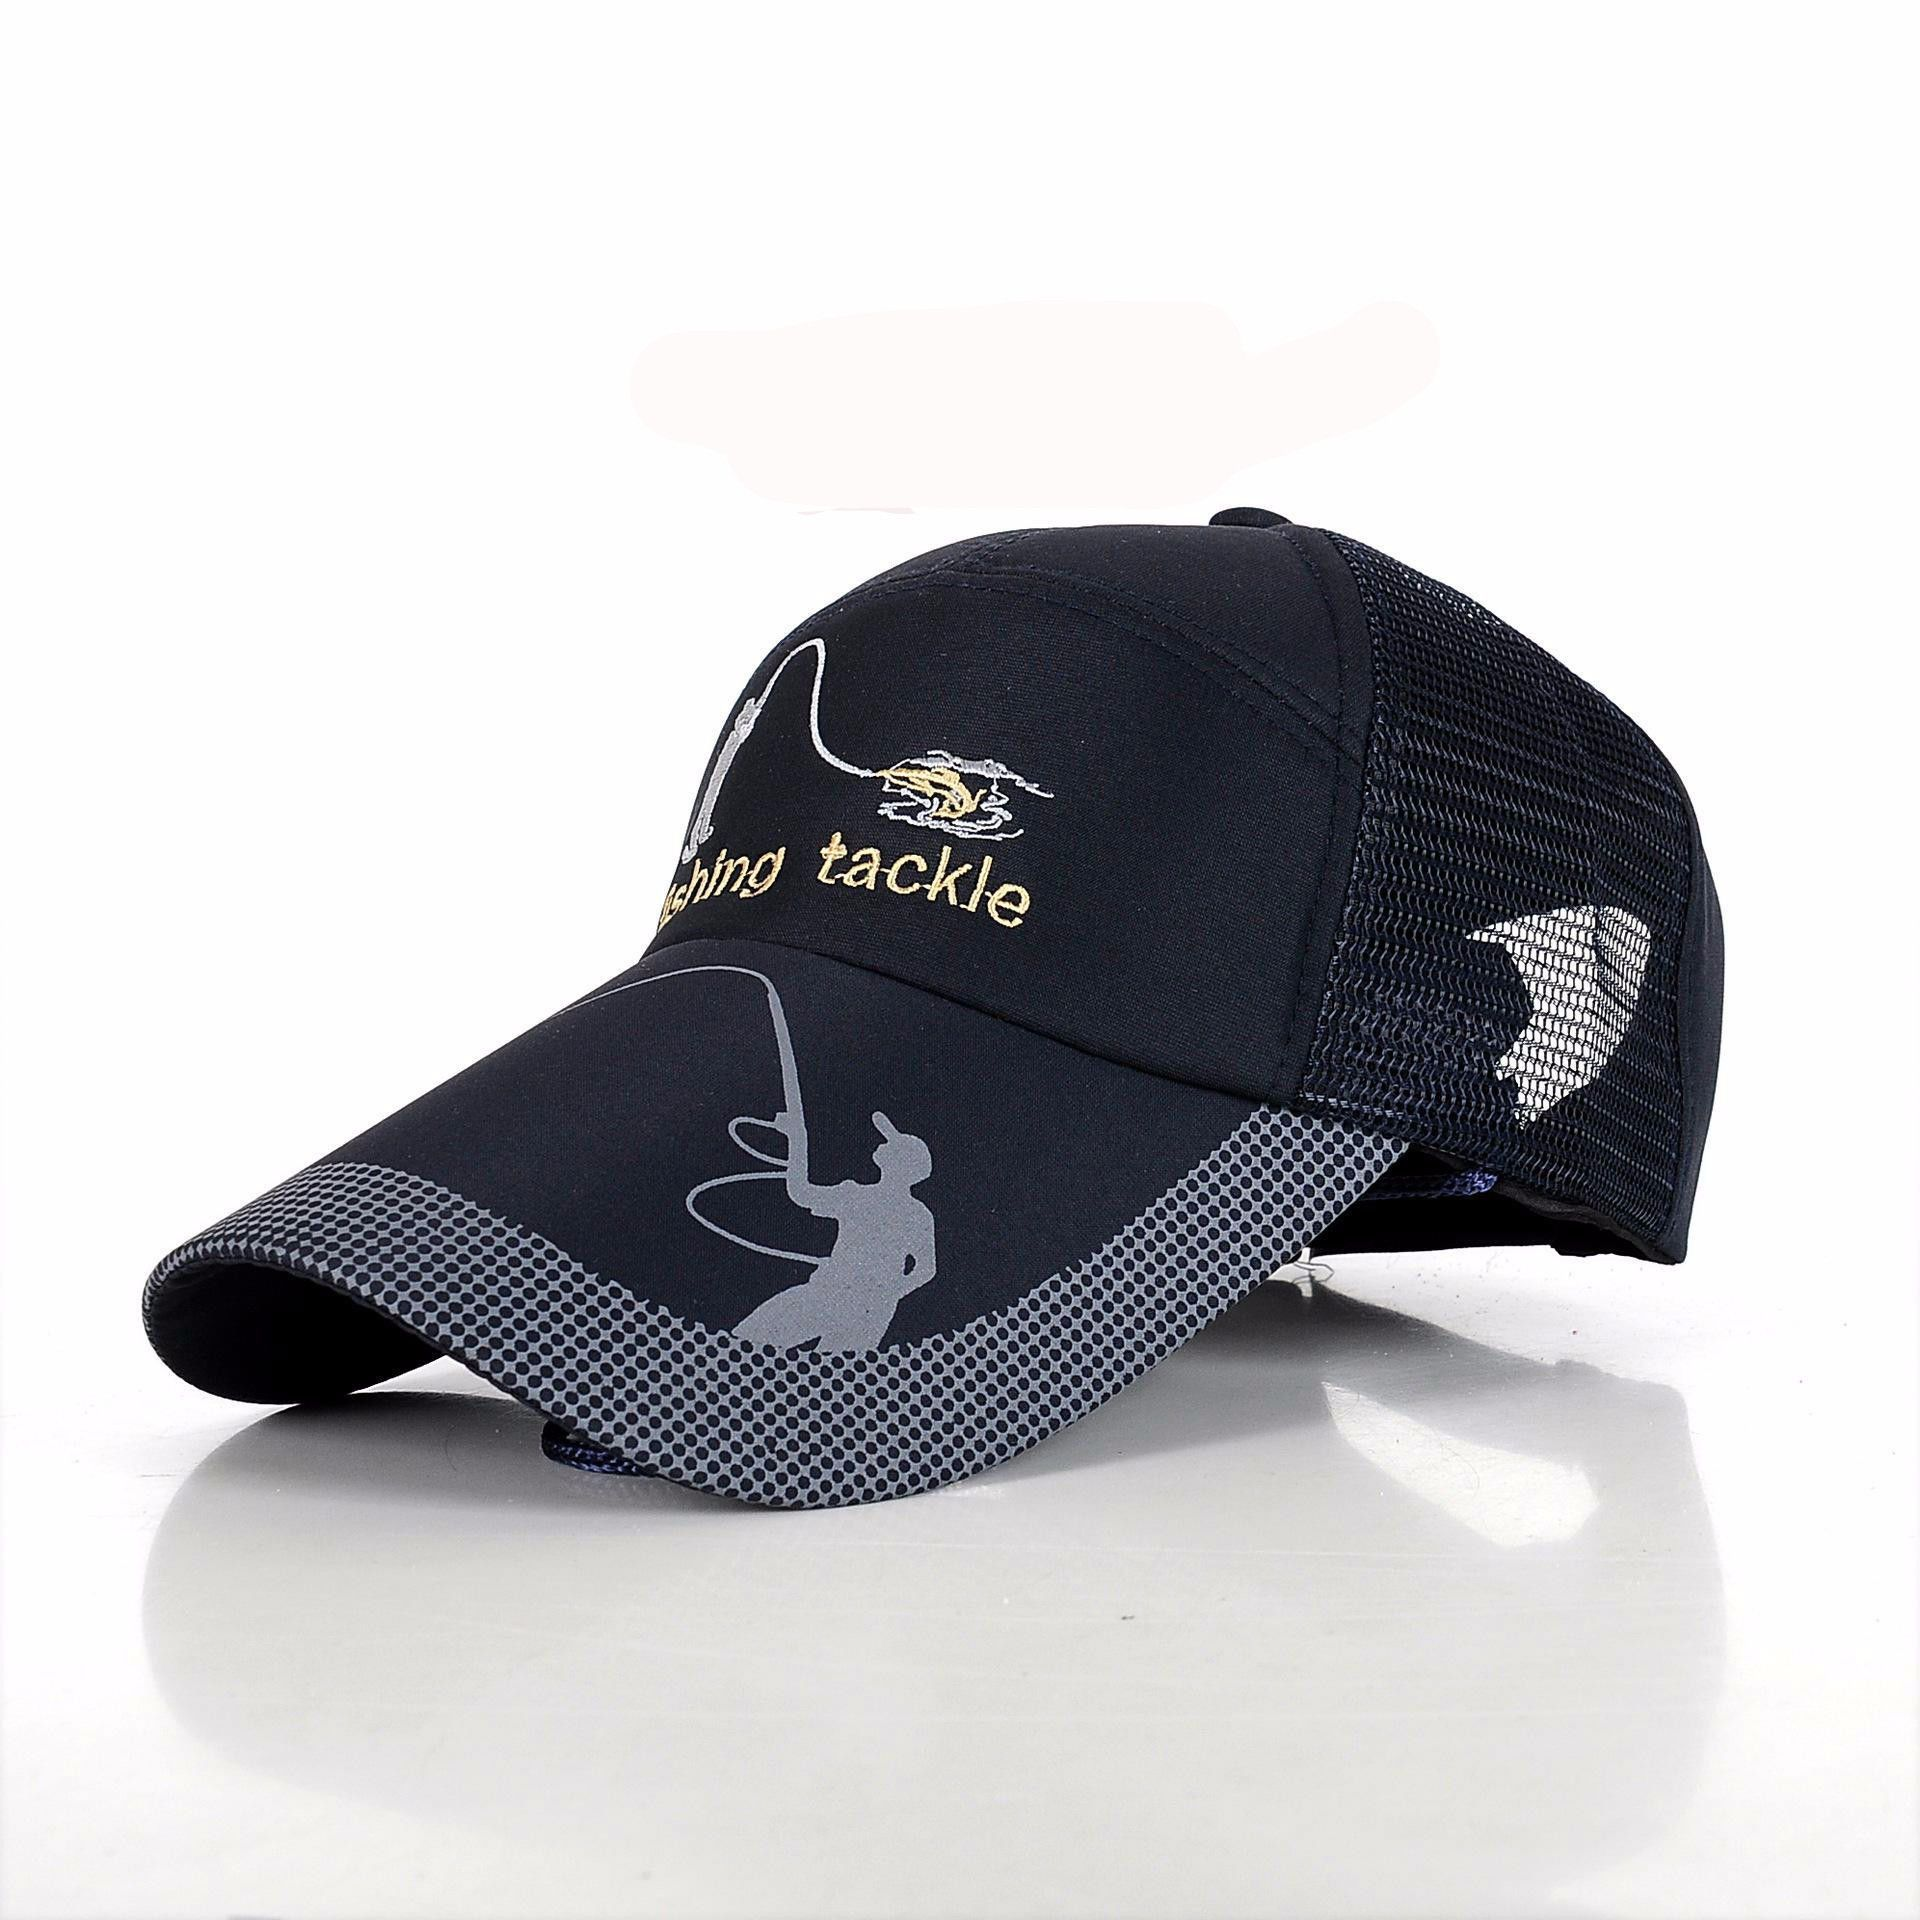 summer outdoor sports fishing caps men baseball cap